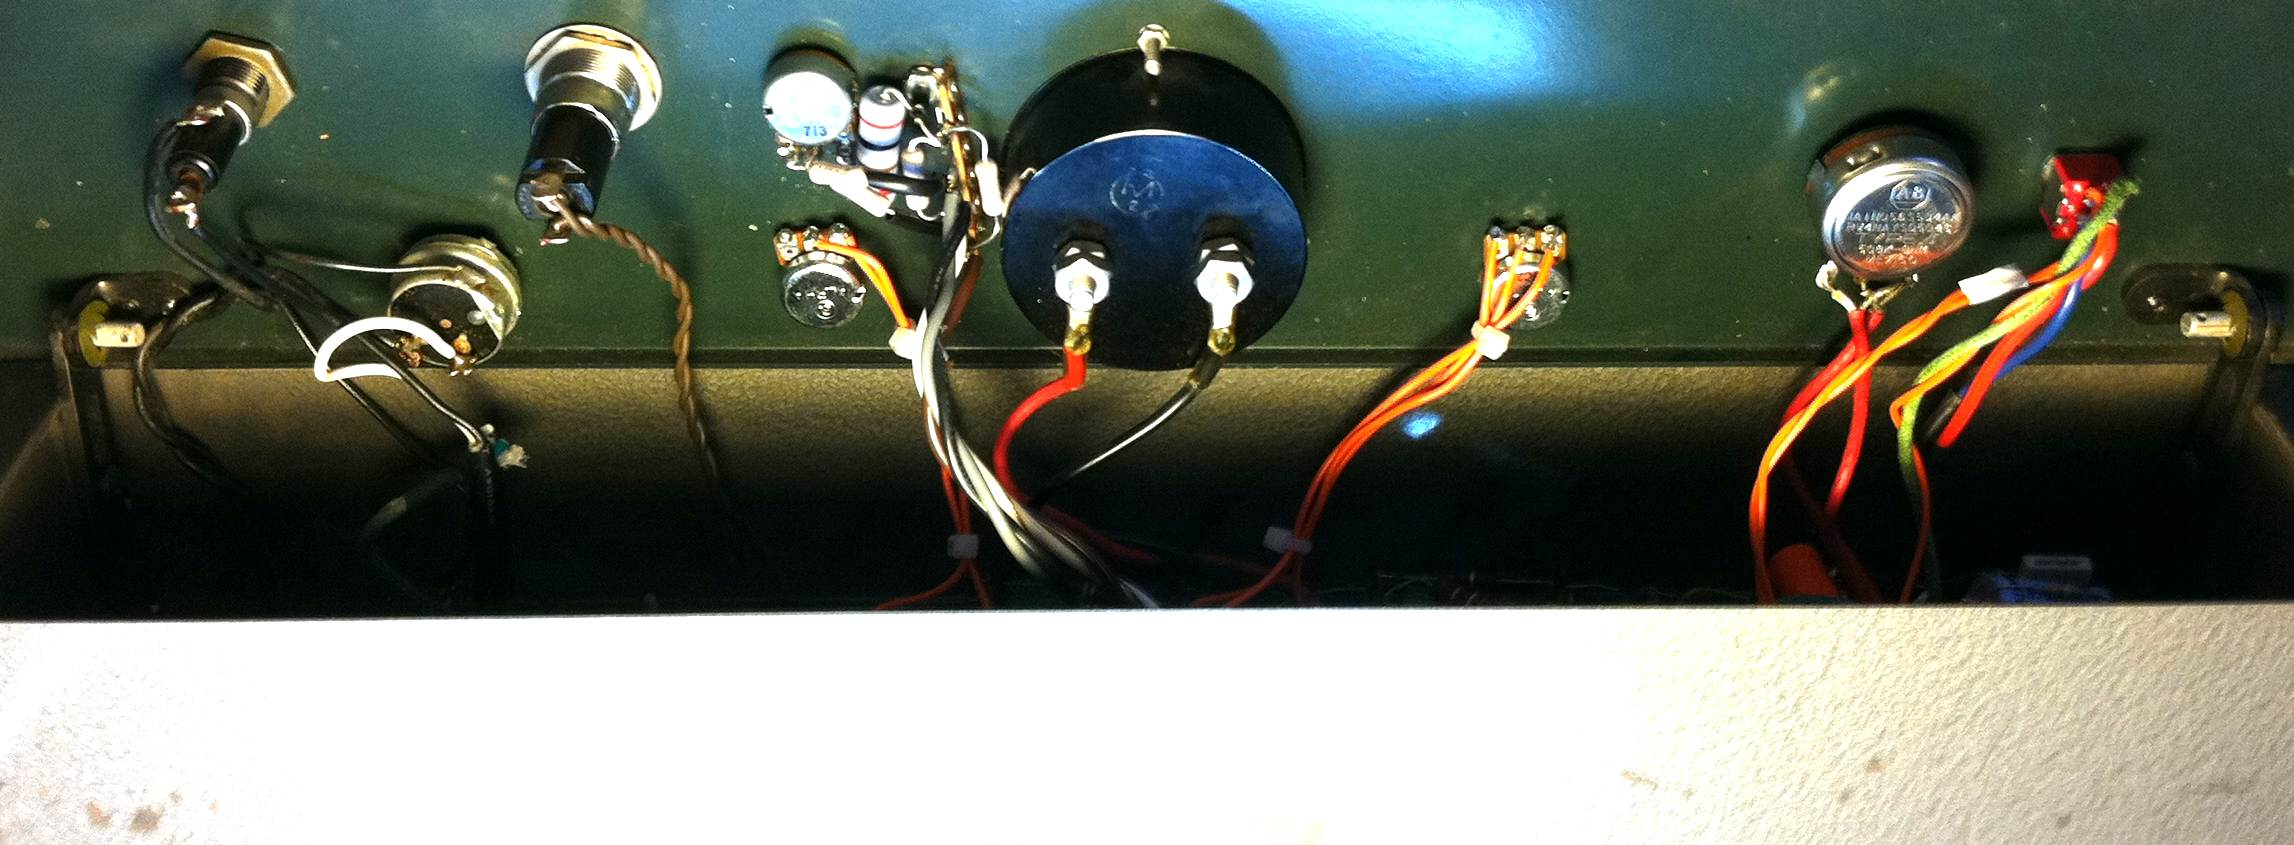 August 2011 Preservation Sound In Addition Les Paul Modern Wiring Furthermore Gibson Heres